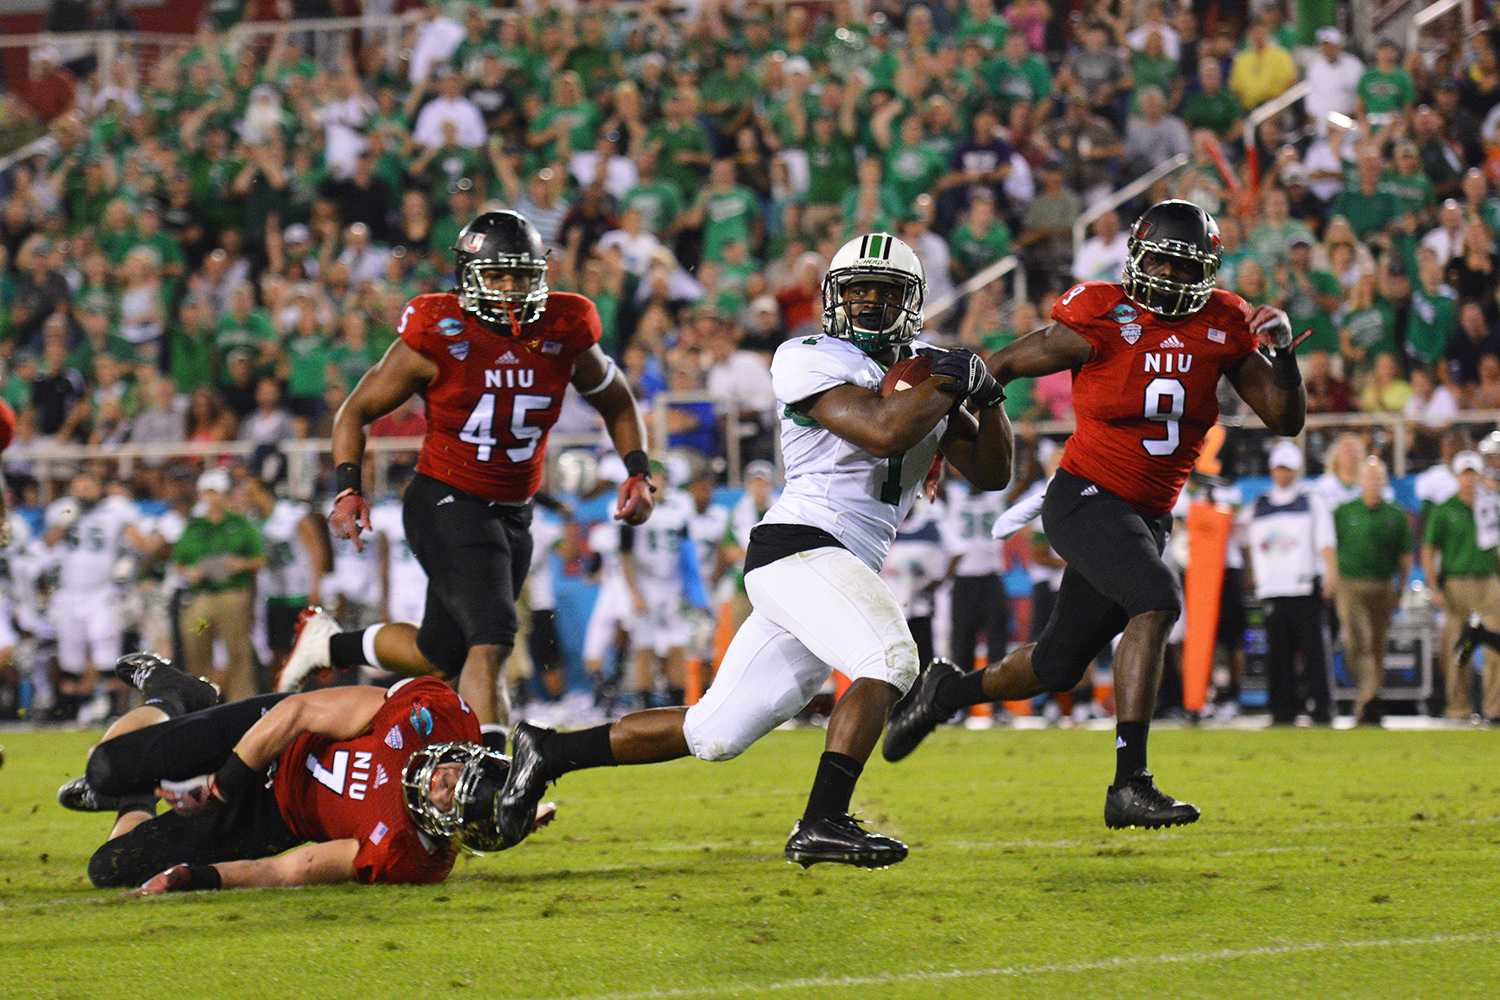 Marshall wide receiver Tommy Shuler led his team in catches (18) and in total receiving yards (189) as the Thundering Herd defeated Northern Illinois 52-23.